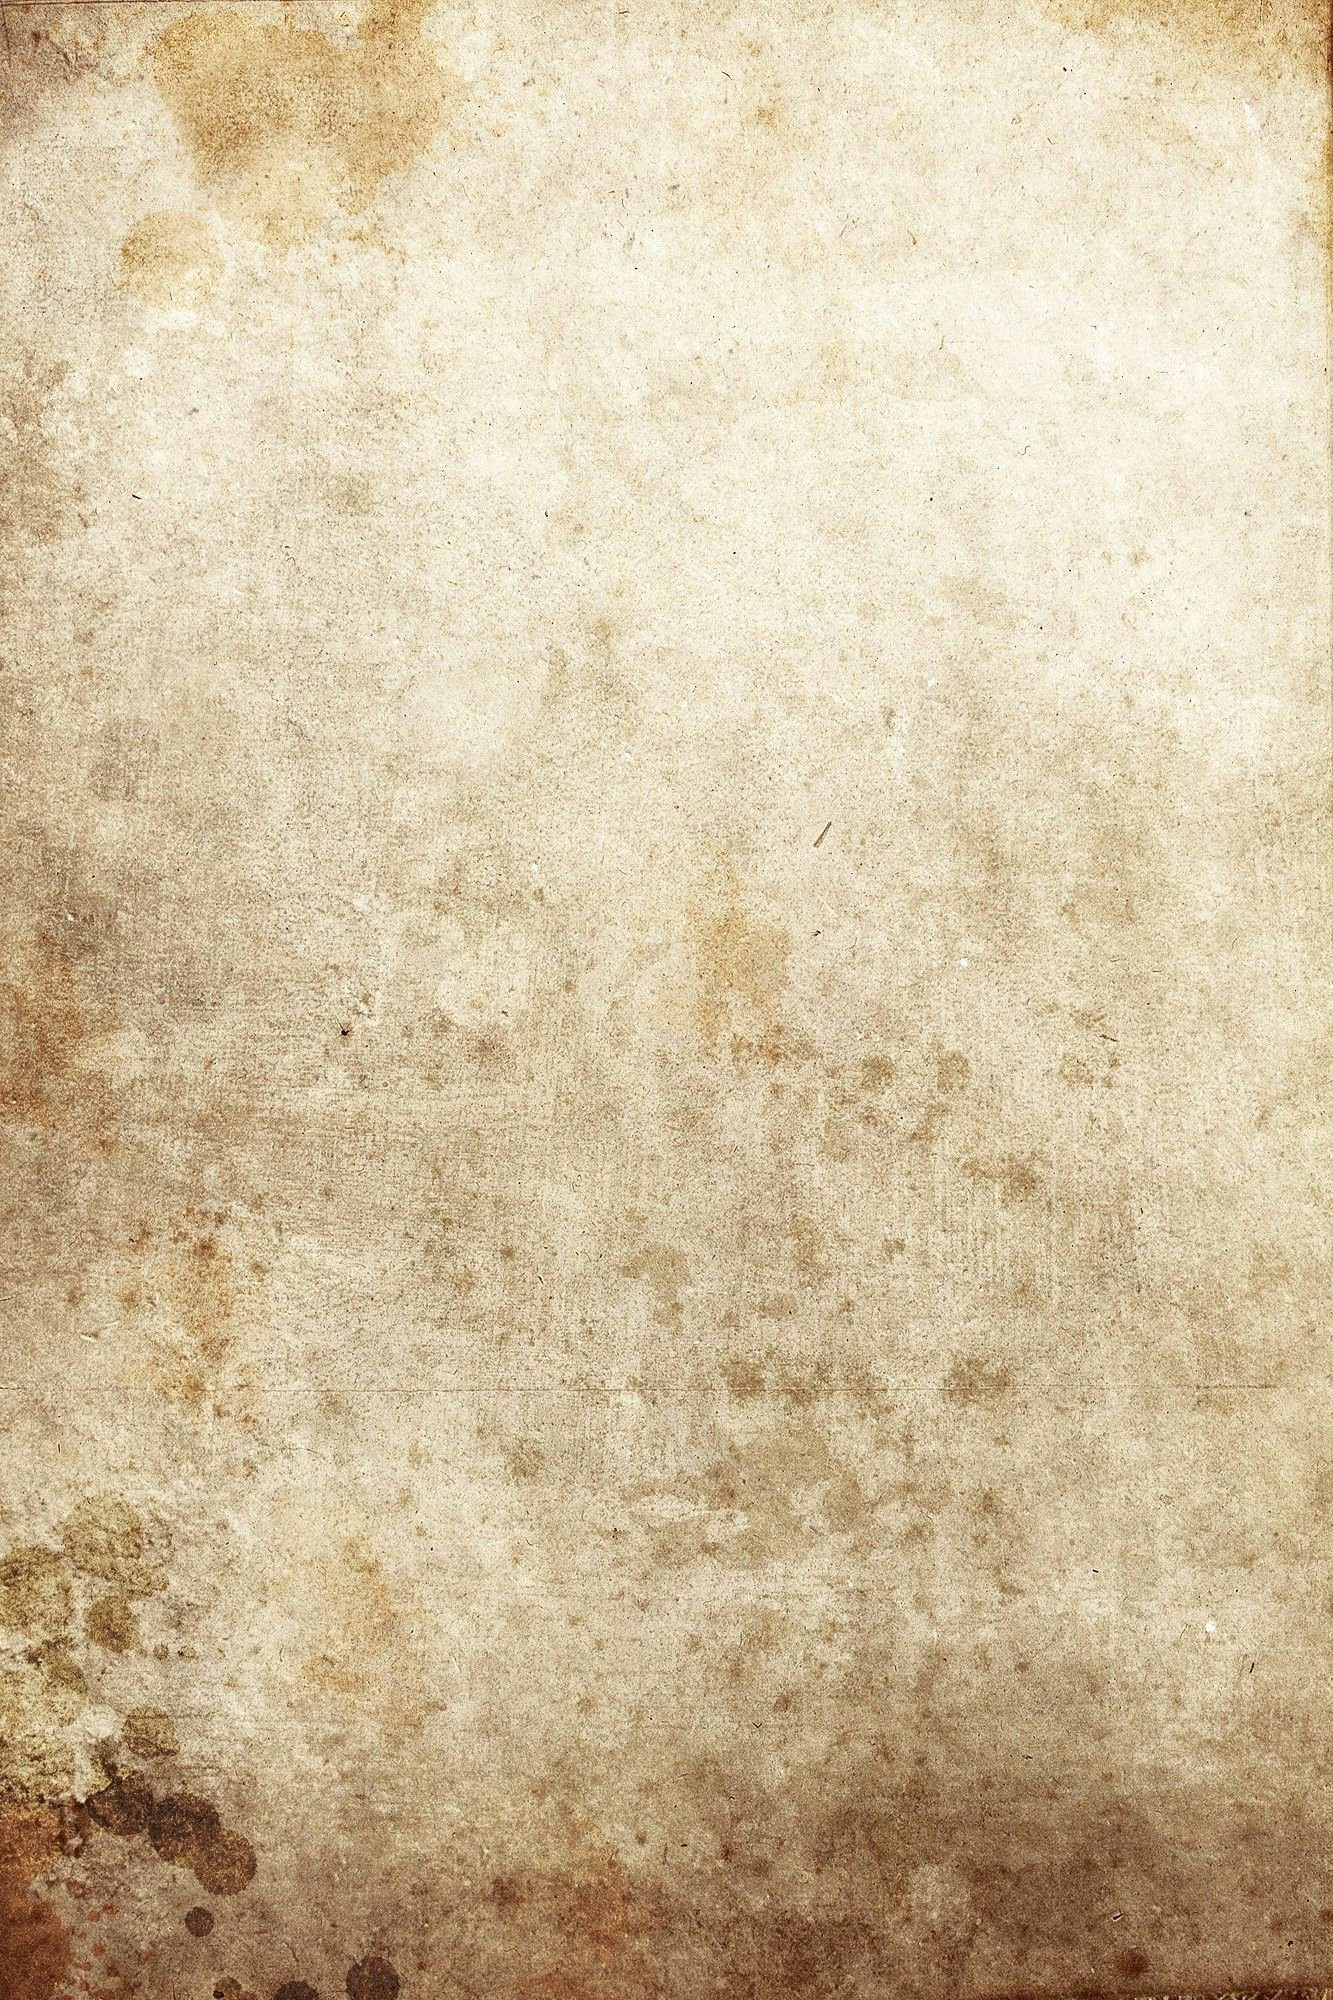 Old Paper Texture Free Luxury Old Paper Texture Background Free Image